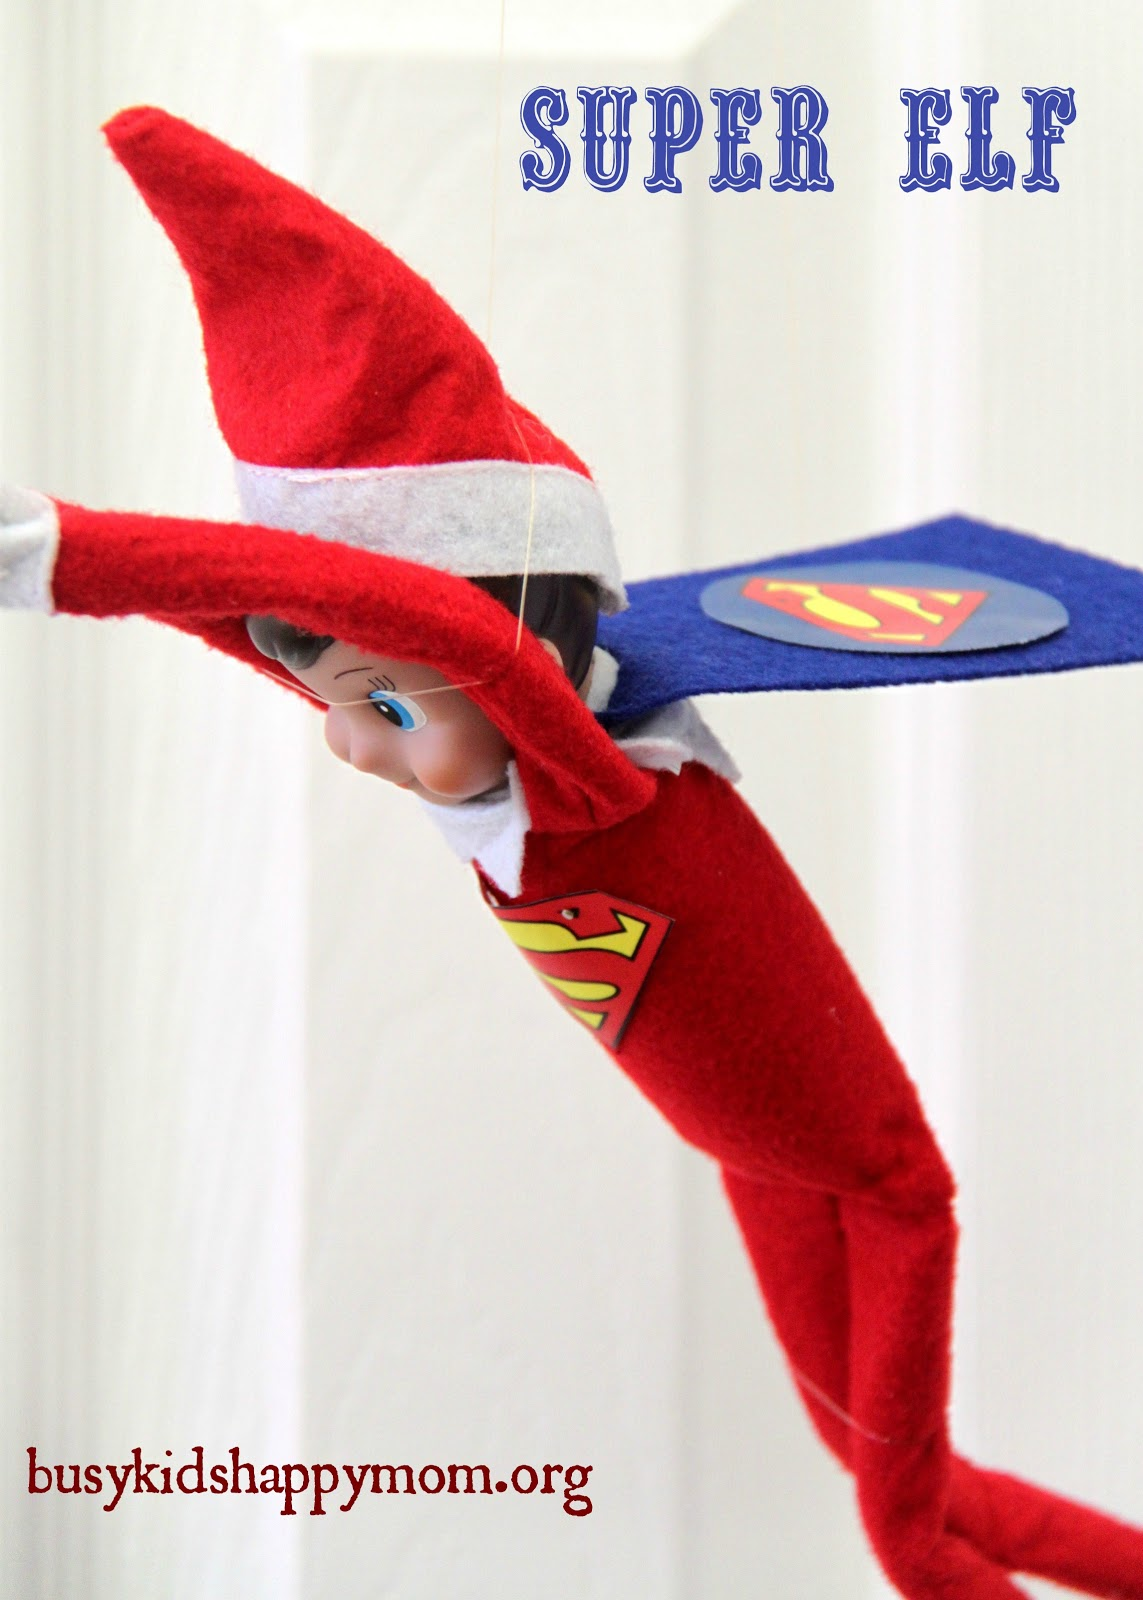 · Elf on the Shelf vs. Reindeer in Here: Which is the best fit for your family tradition? Elf on the Shelf and Reindeer in Here are the two biggest toy-and-book holiday traditions for kids.